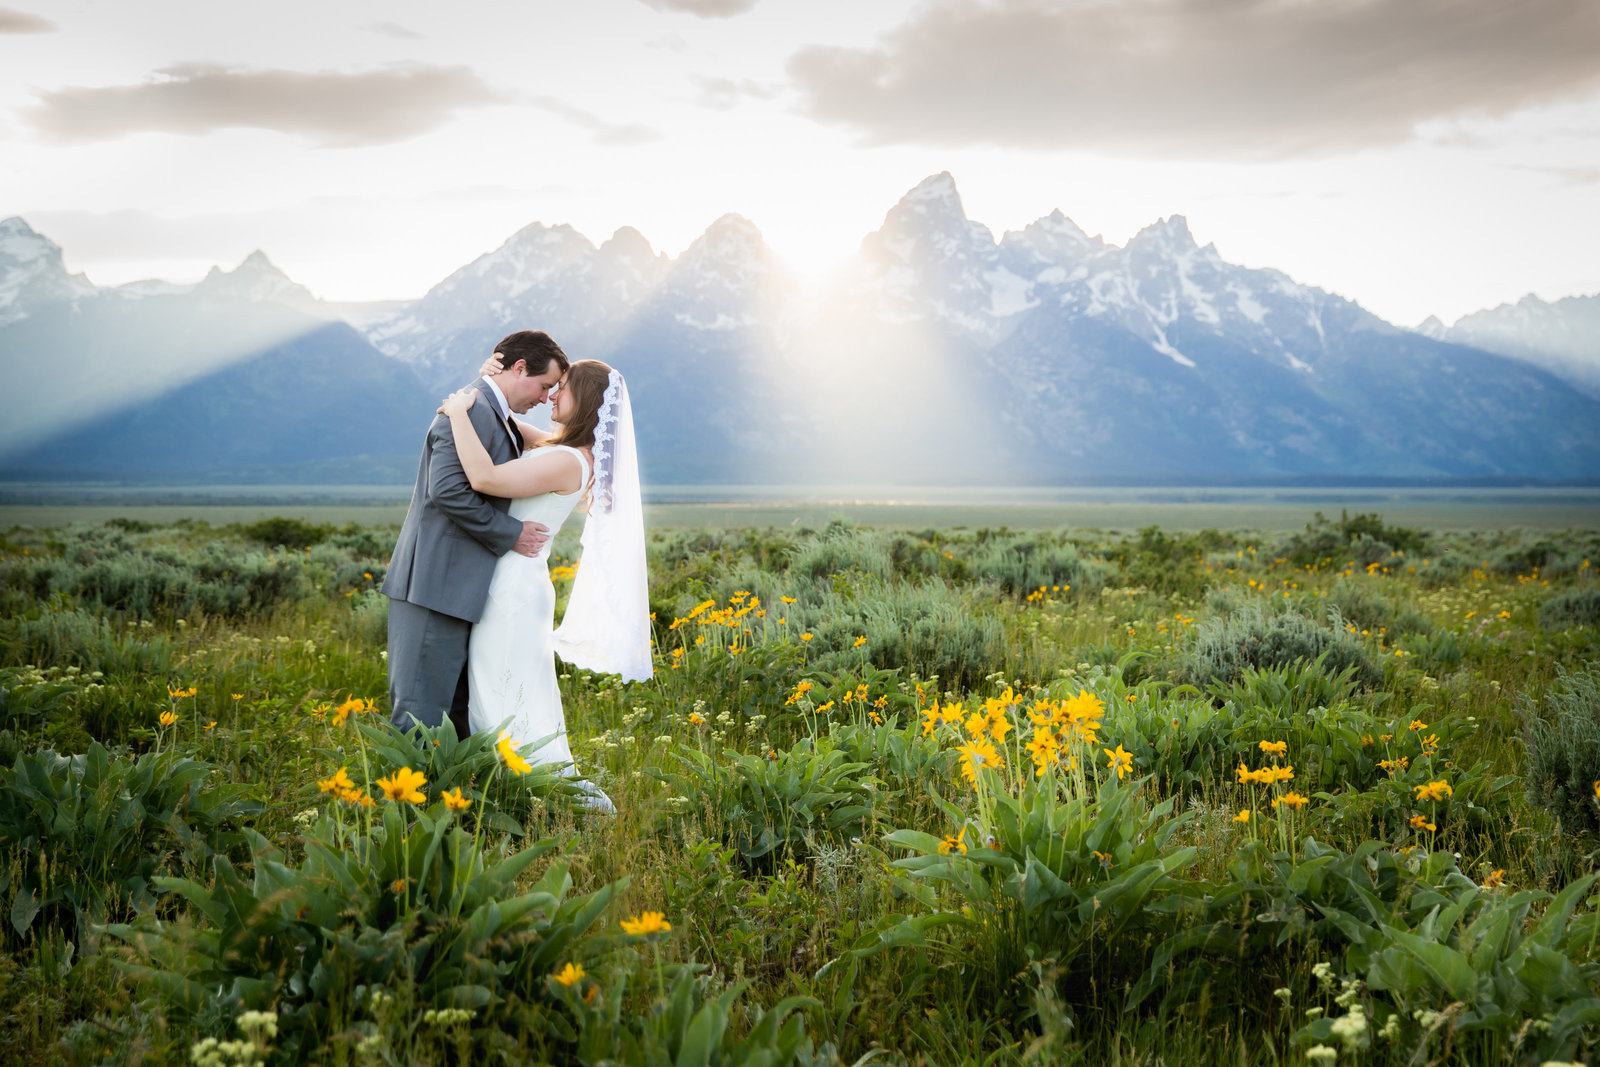 Grand Teton National Park wedding couple in wildflowers at sunset